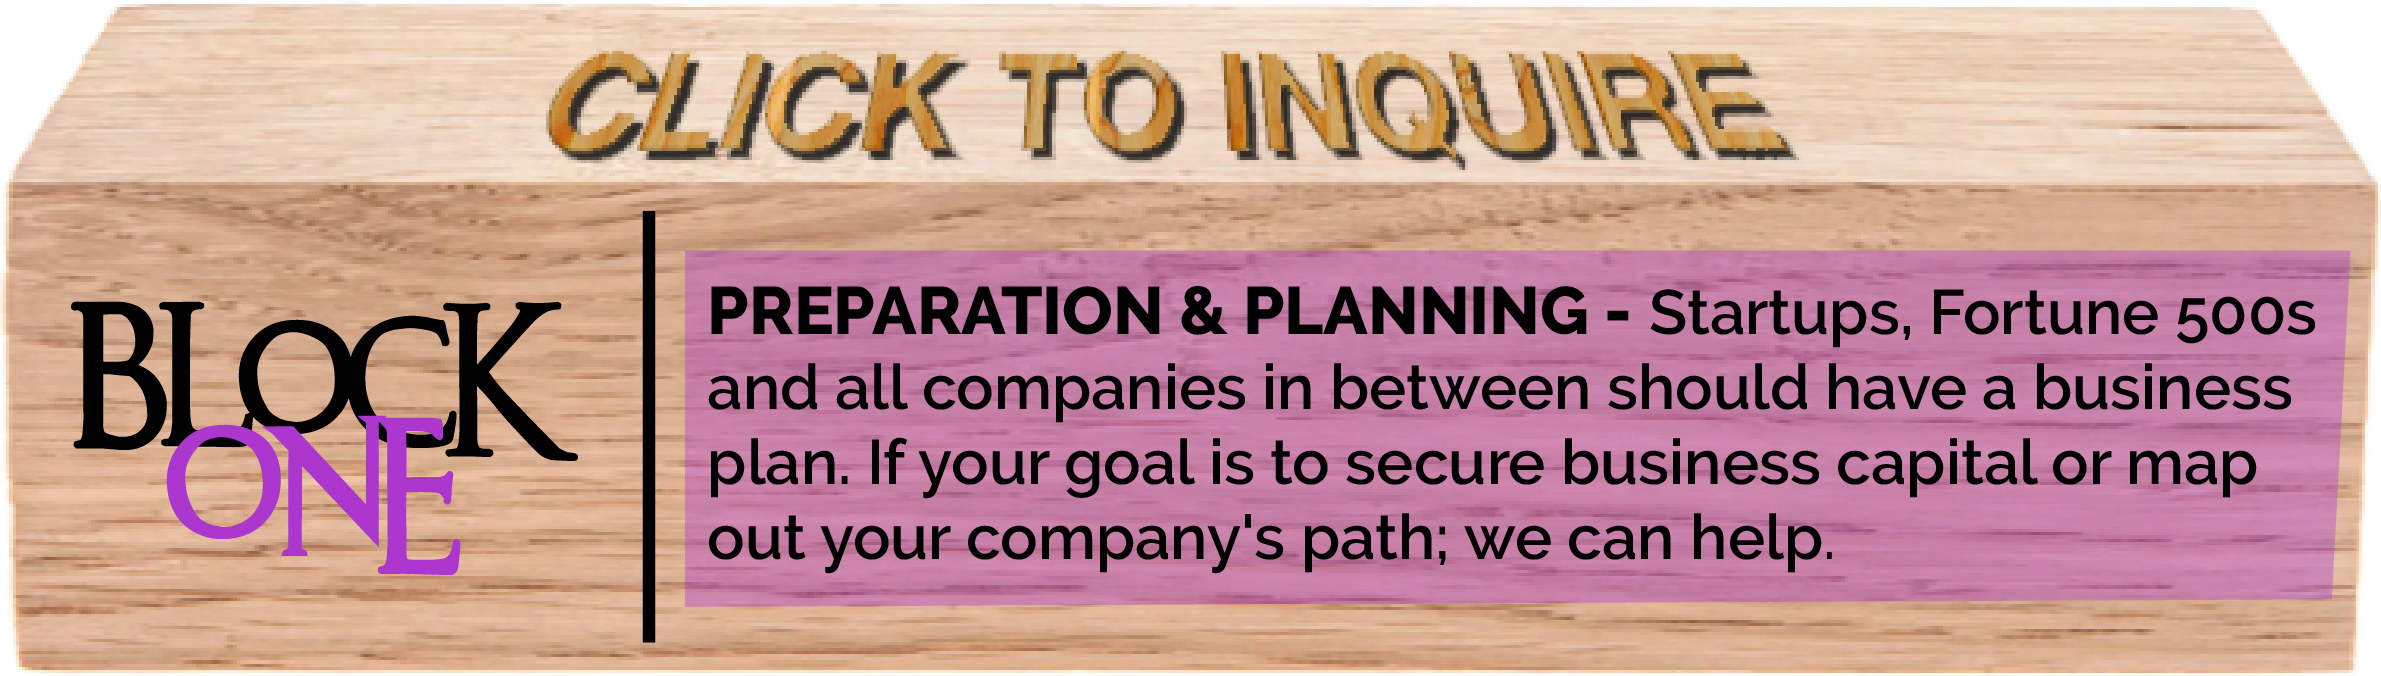 Preparation and Planning